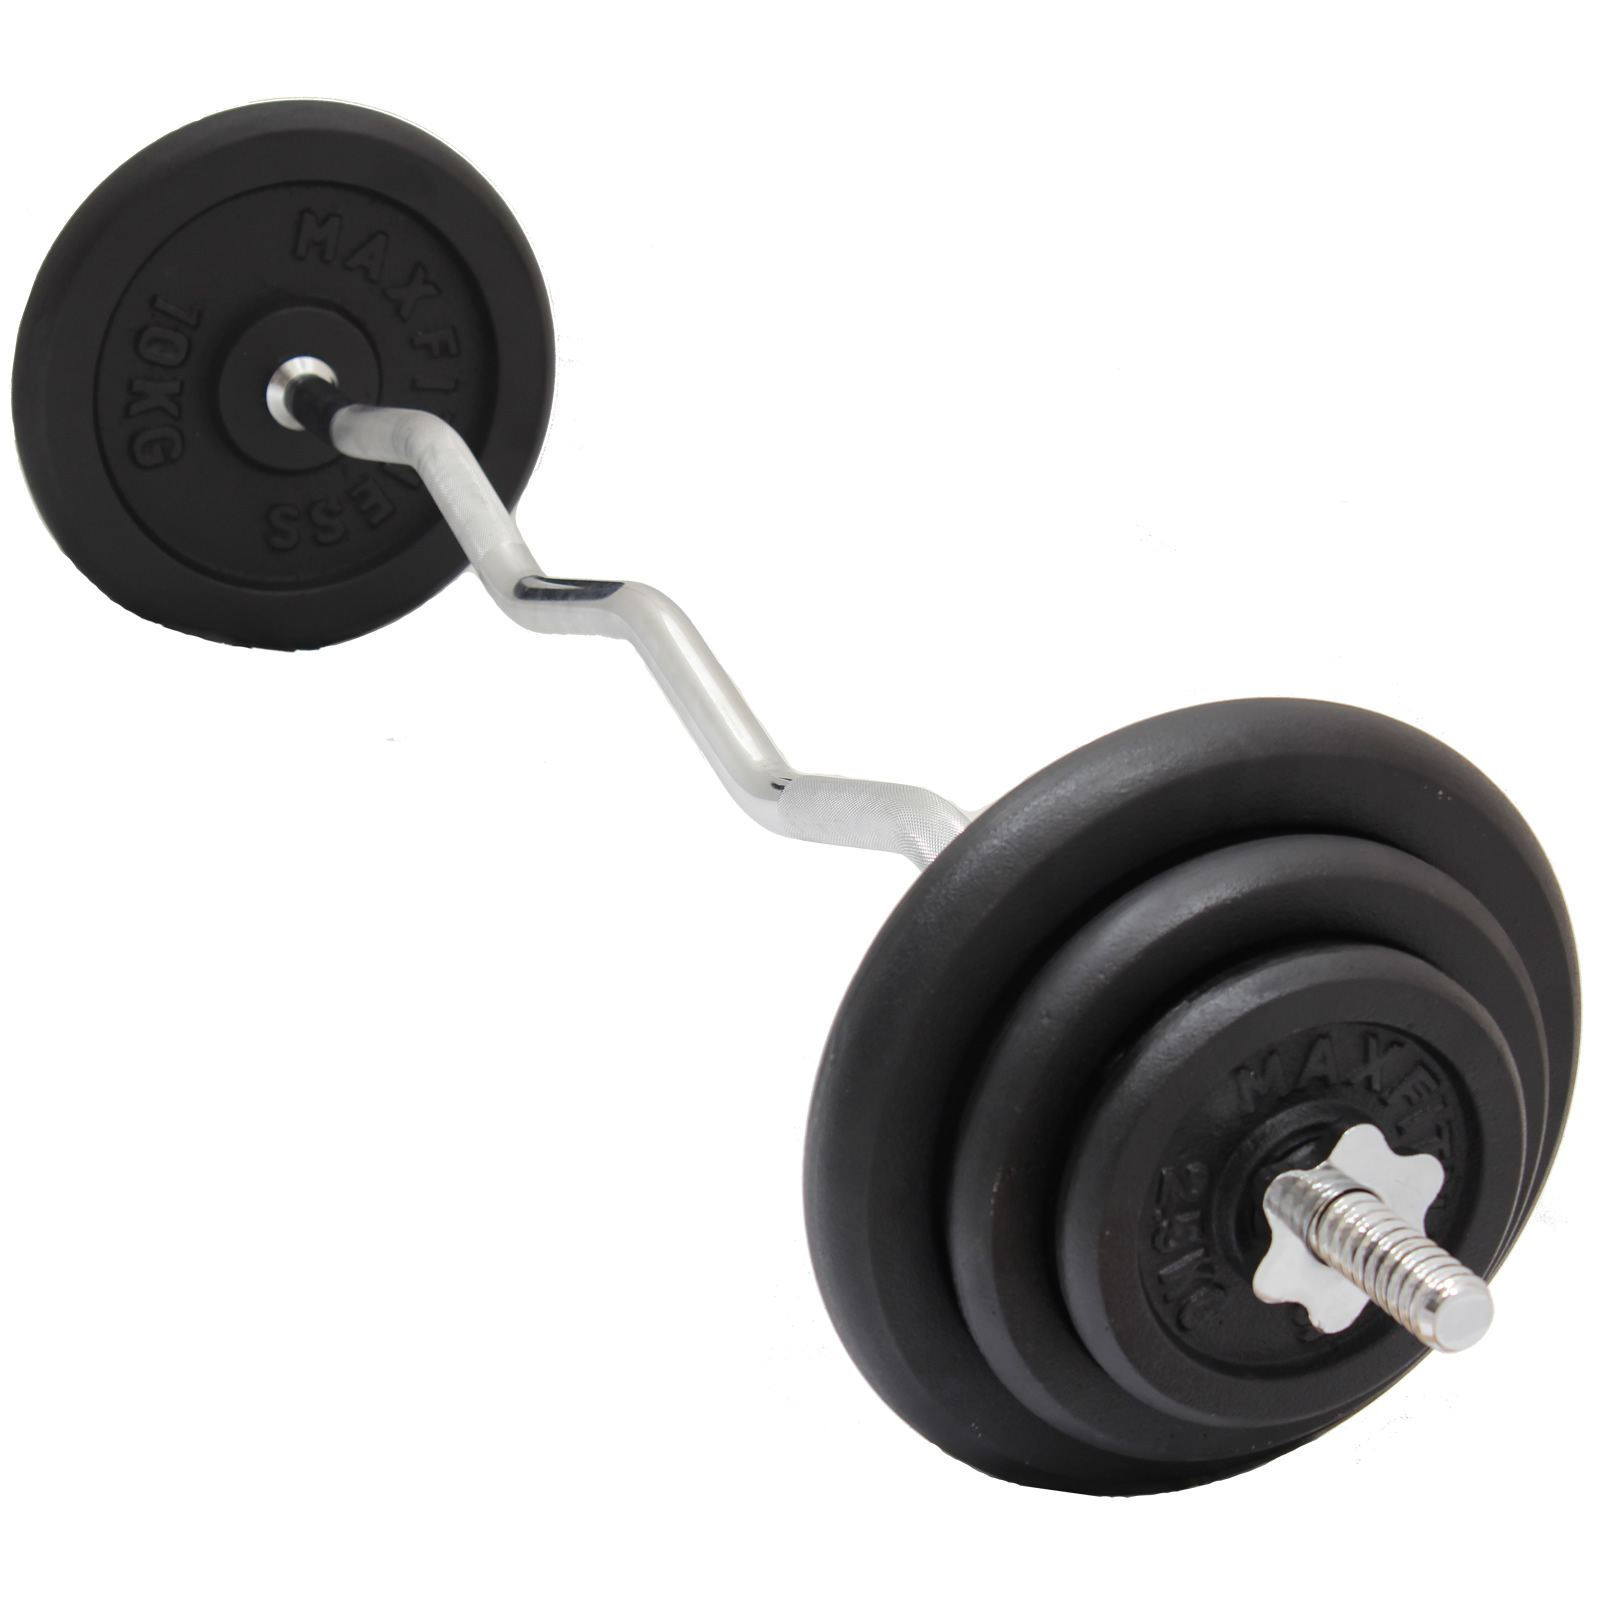 barbell weights - photo #32